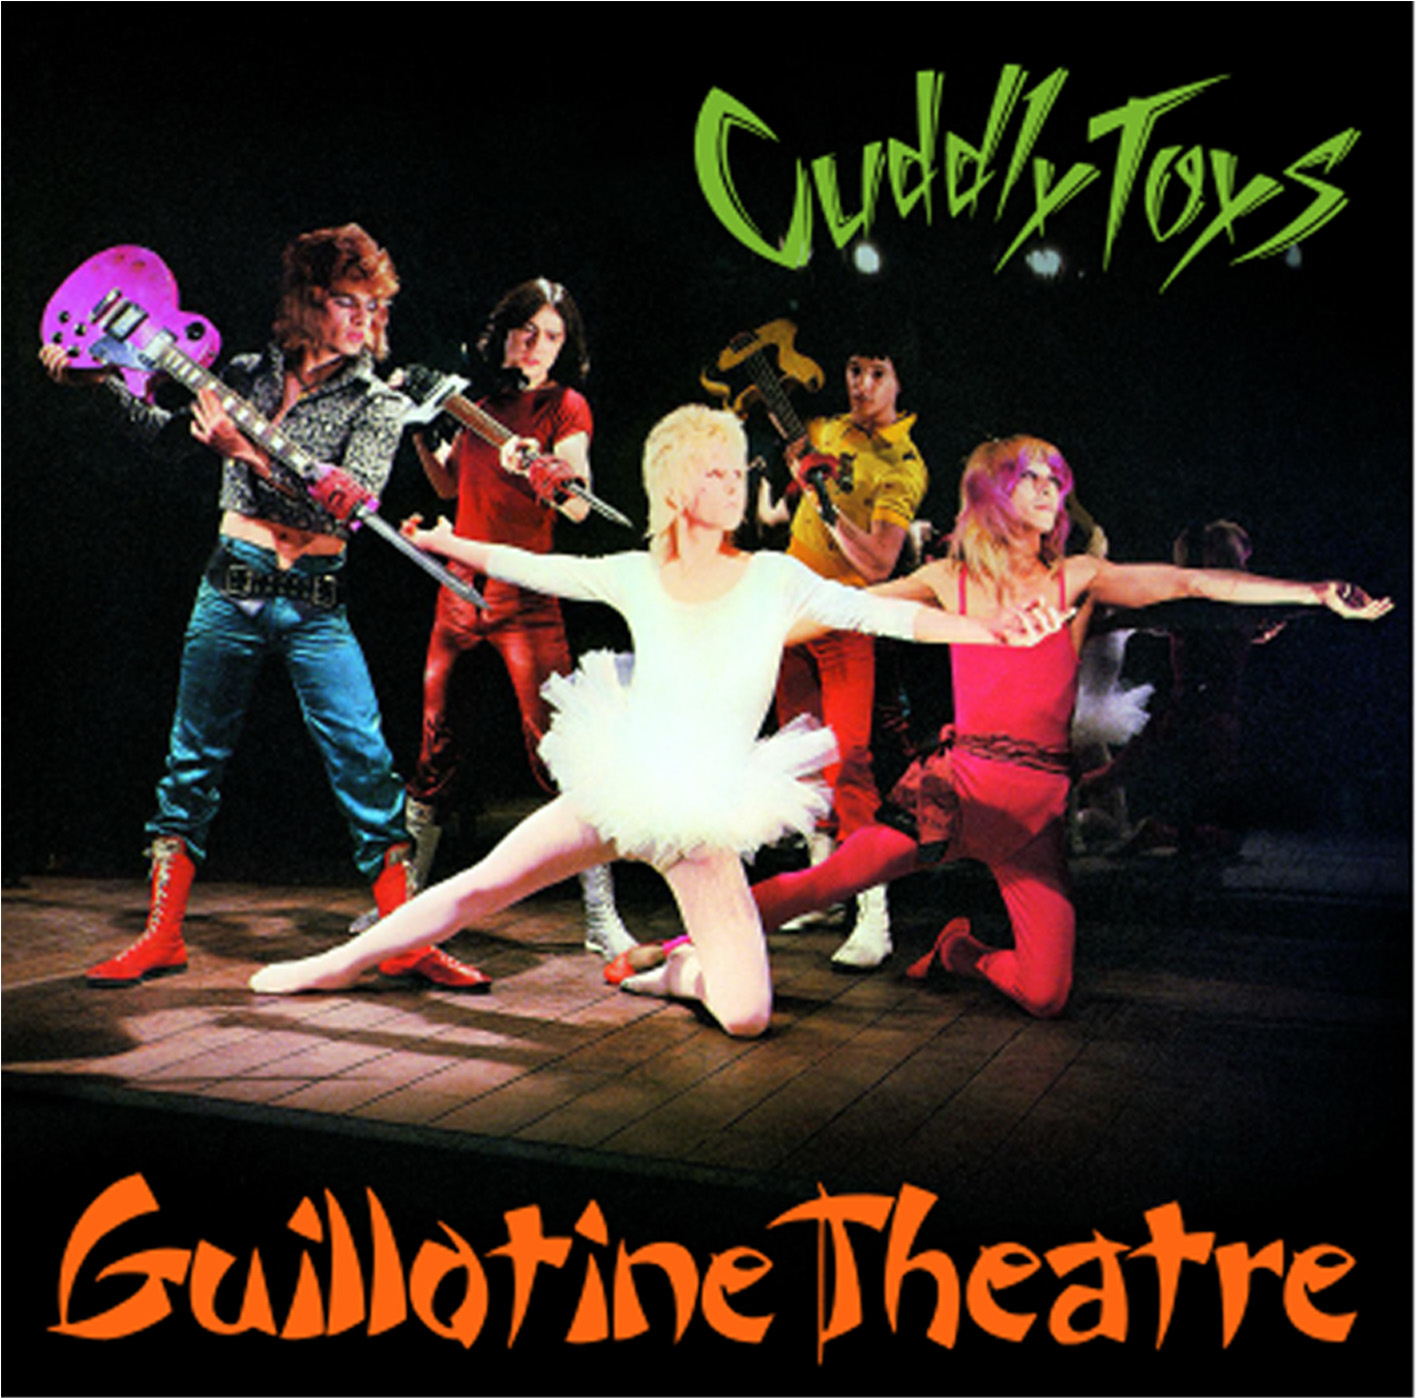 Cuddly Toys Guillotine Theatre cover